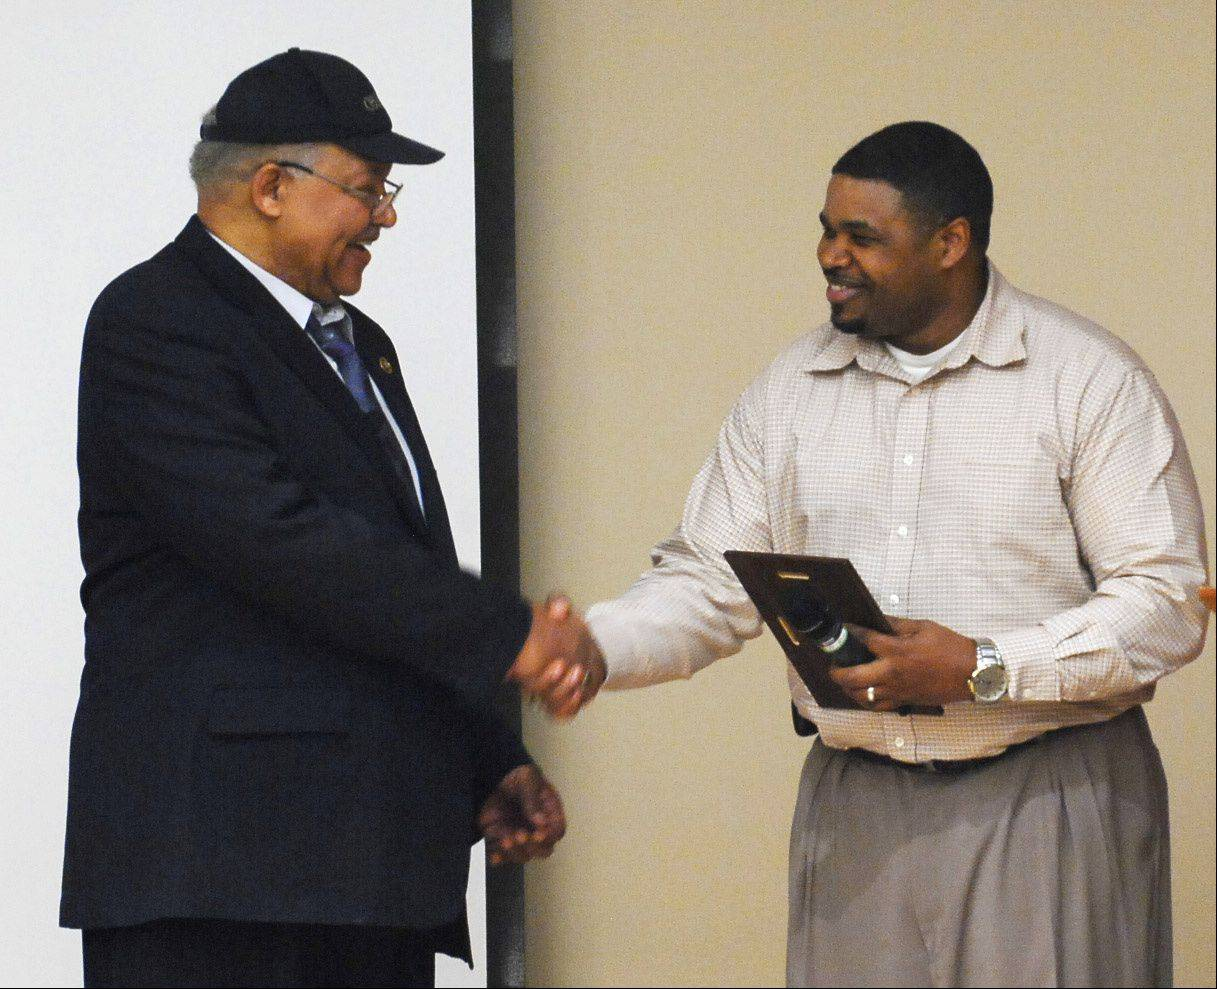 Sgt. Gary Neal of the Elgin Police Department presents a plaque to Robert Moore, who wrote a book about the contributions of black U.S. marshals after realizing they were overlooked in history texts. Moore, who was appointed to be a marshal by President Bill Clinton, discussed his book Sunday at the Gail Borden Public Library in Elgin.